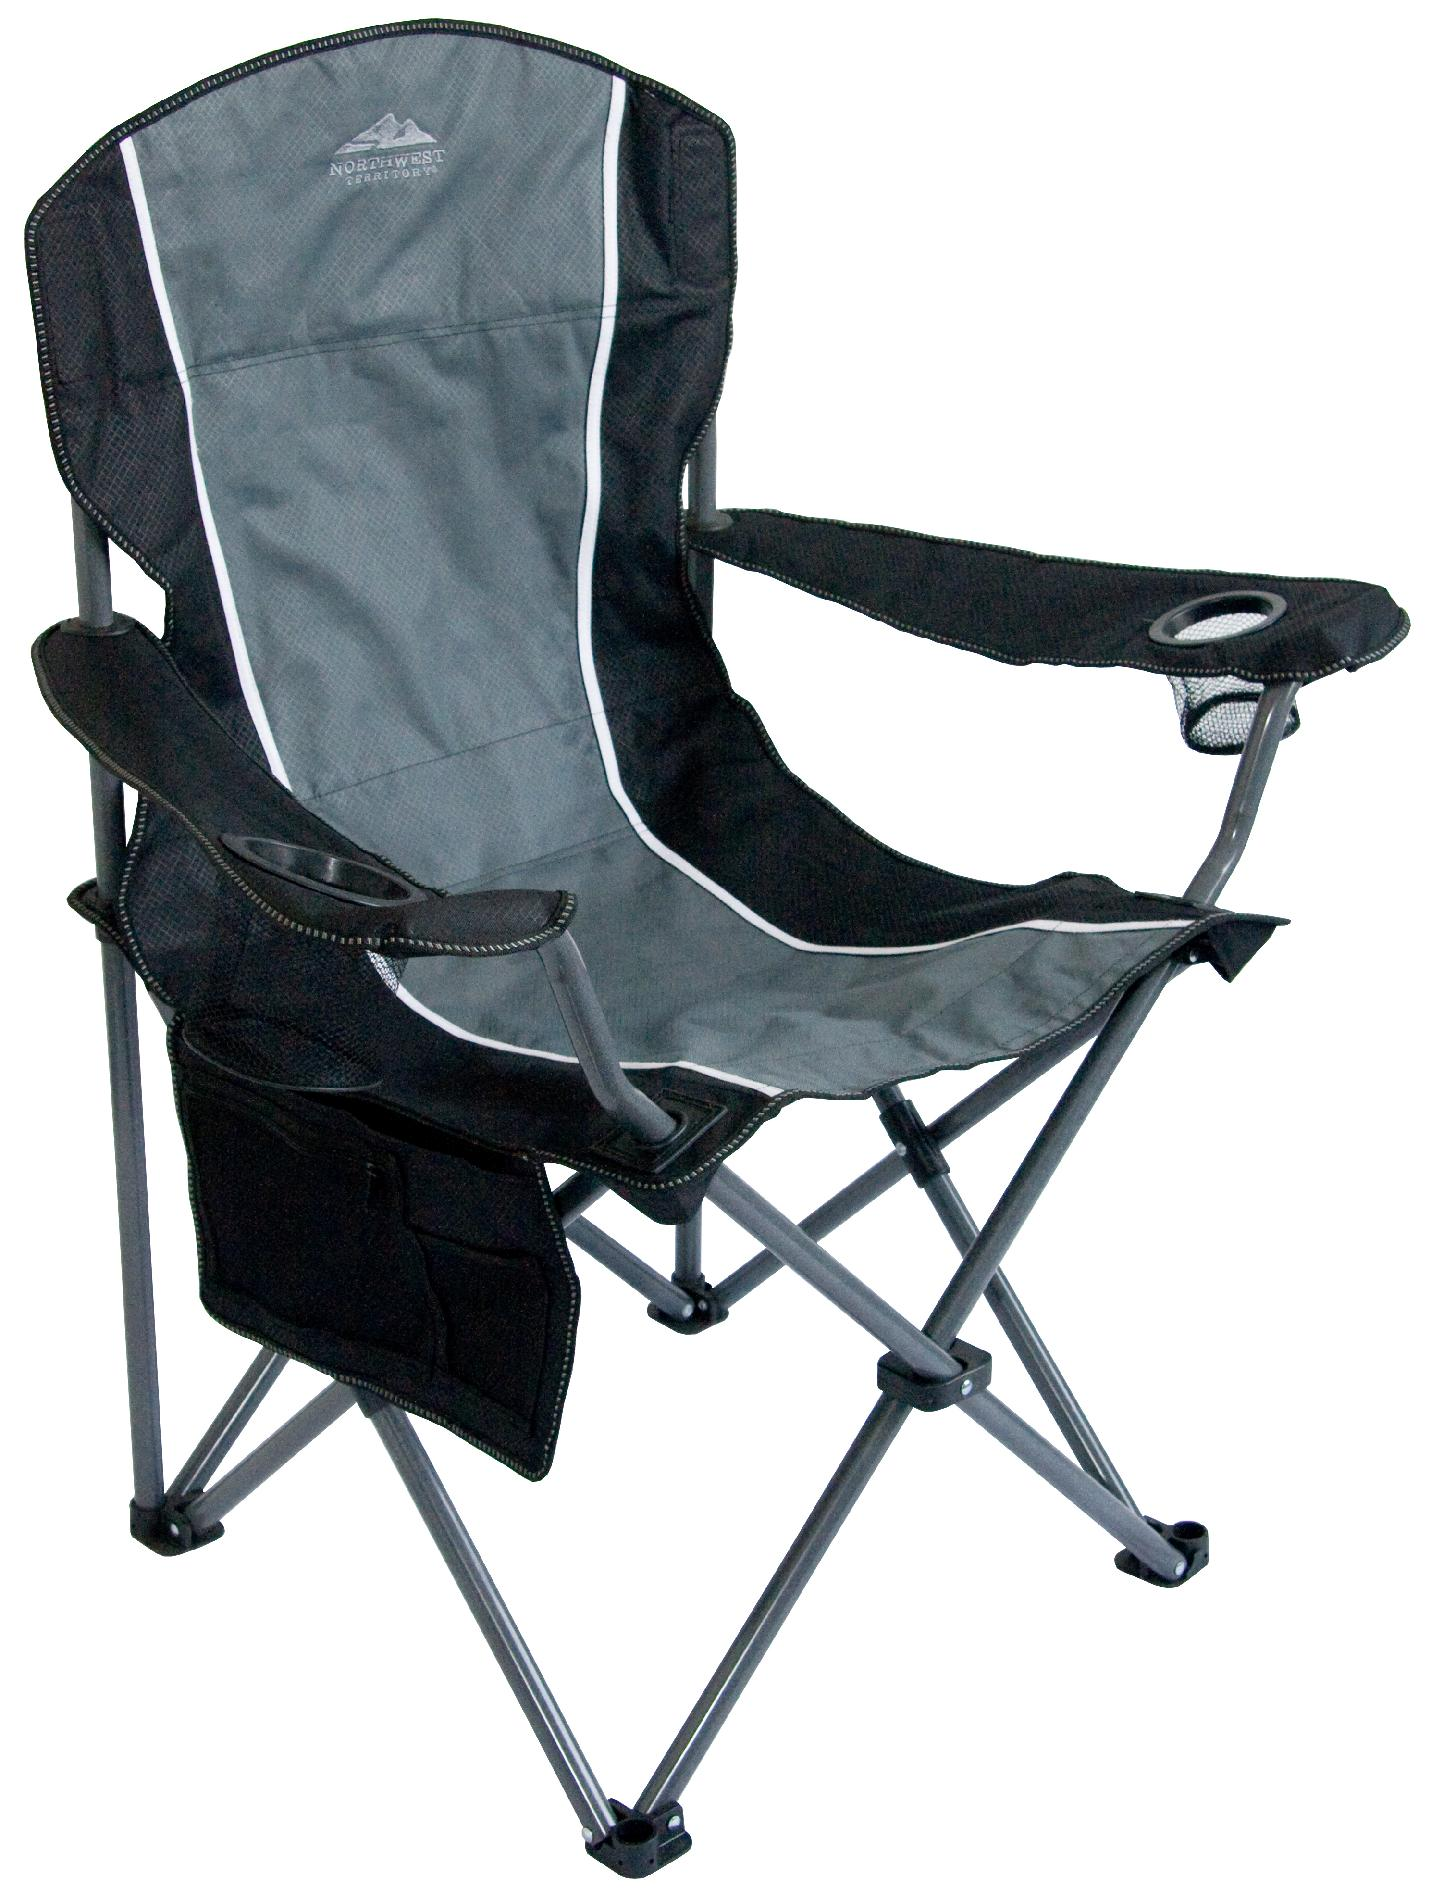 northwest territory chairs chair lumbar support big boy xl quad black comfort and style from kmart